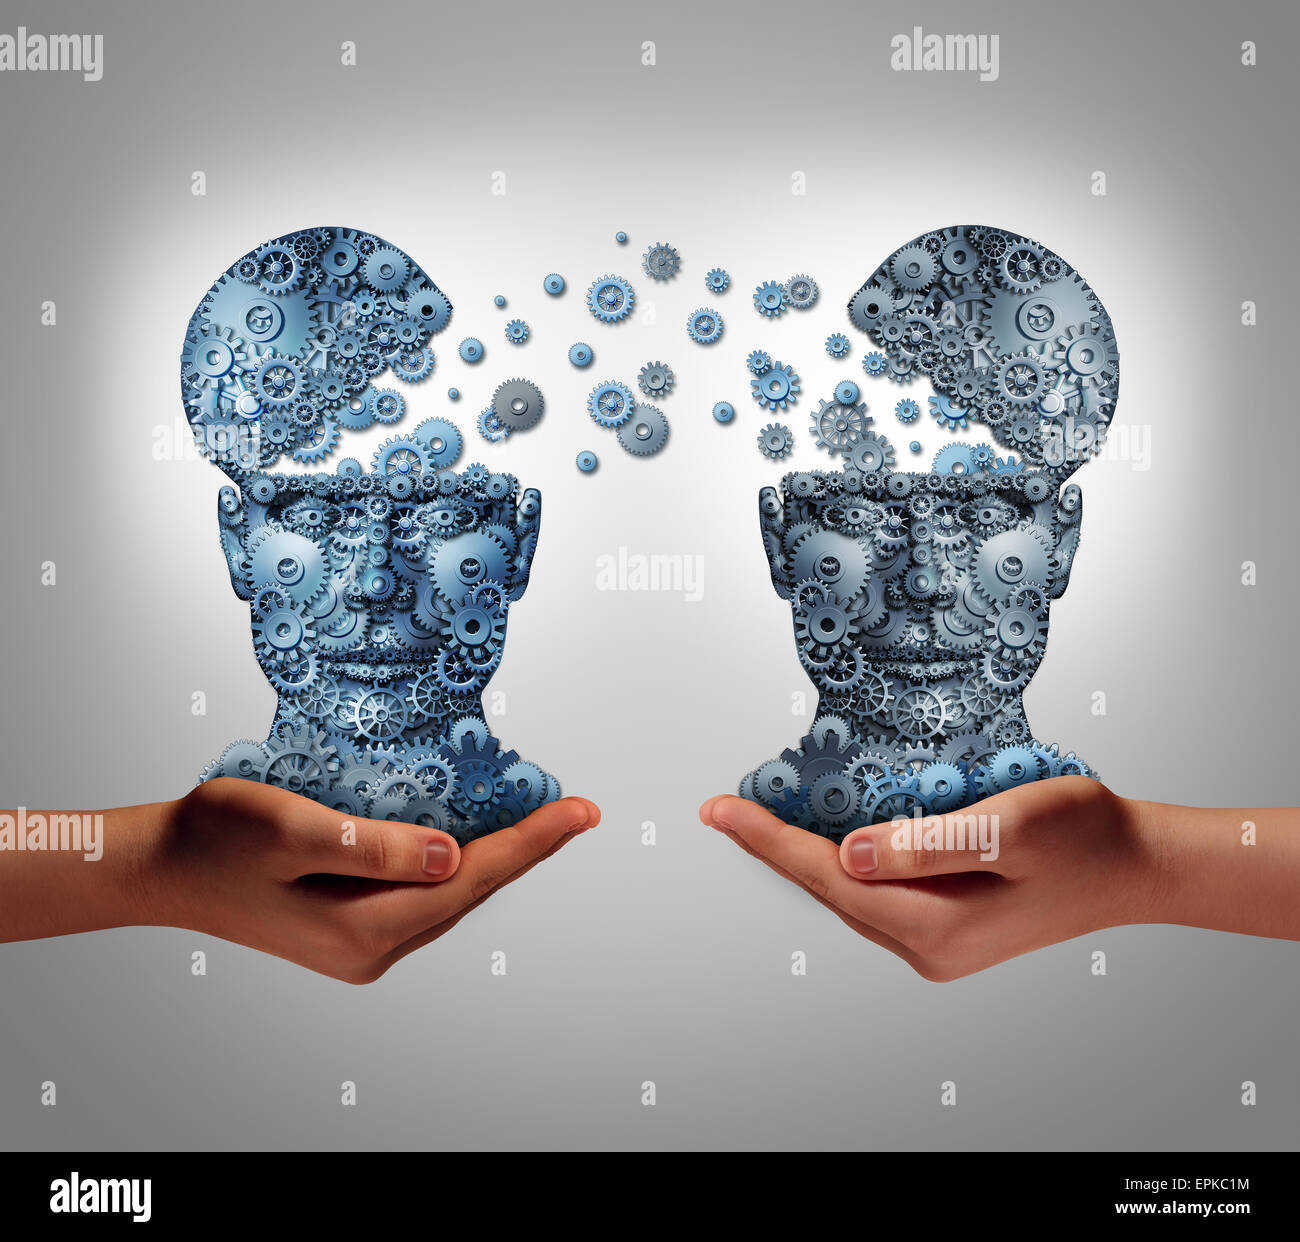 Technology Management Image: Sharing Technology Business Concept As Hands Holding Two